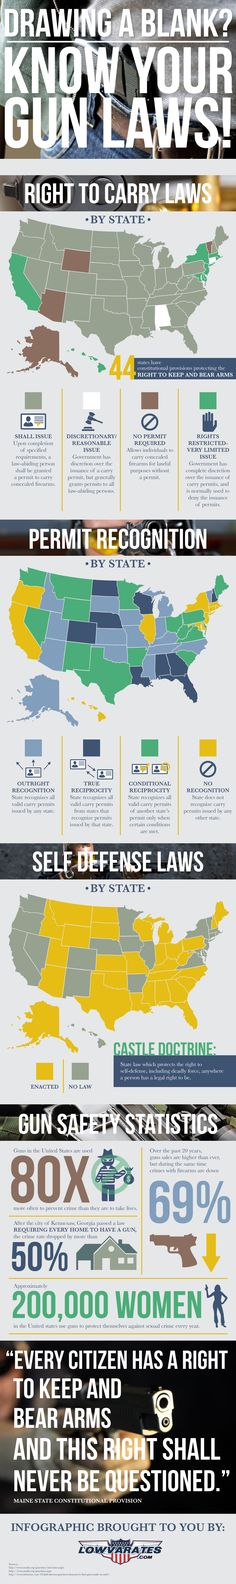 If you own, or carry a gun regularly, it's important that you know your gun laws and your rights. 44 states have constitutional provision protecting the right to keep and bear arm. However many state laws are different by state and you also need to consider federal gun laws as well. This infographic below reviews those laws. We hope you enjoy it.